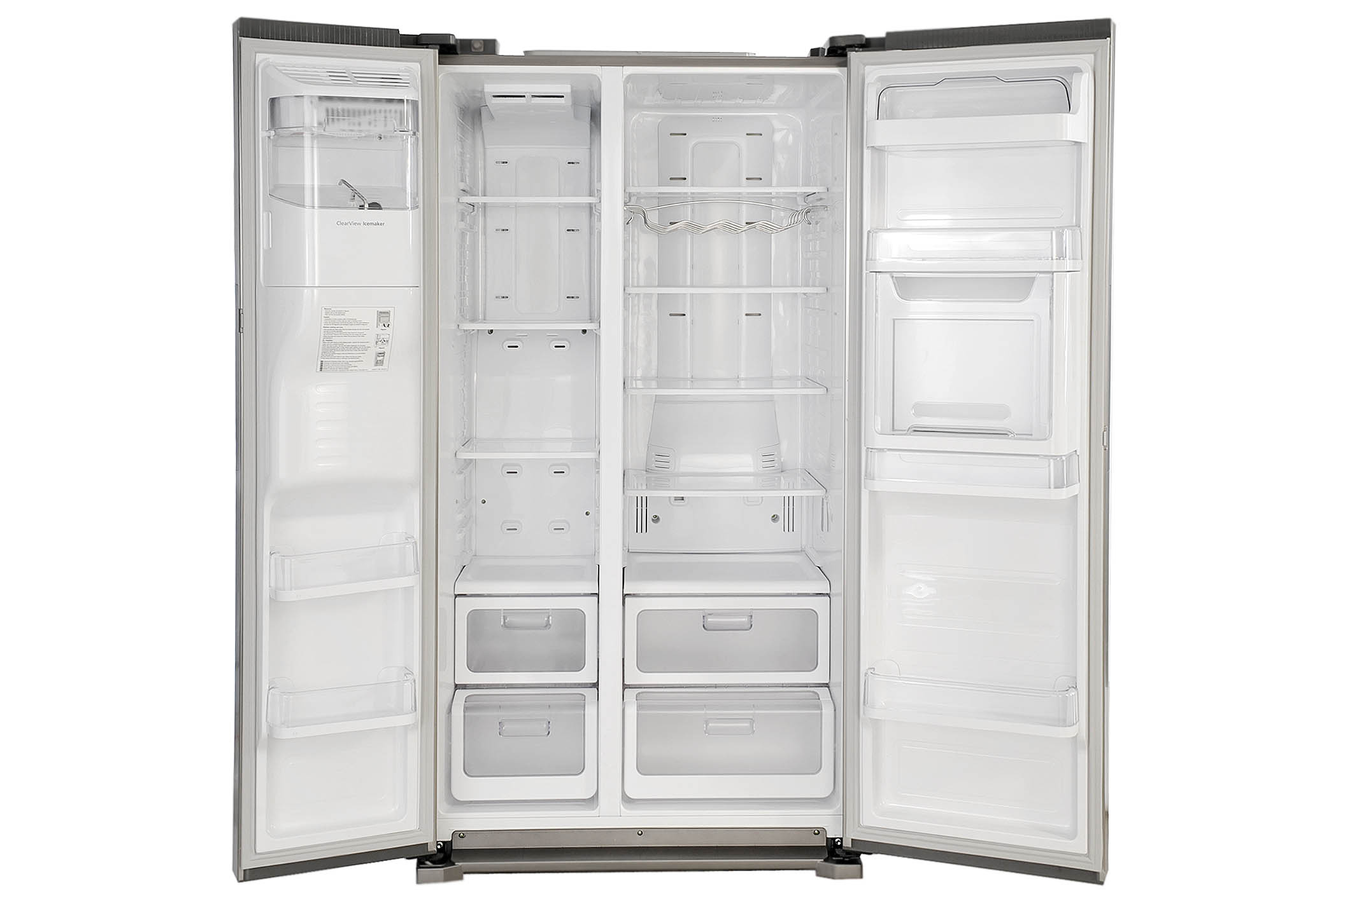 refrigerateur congelateur samsung froid ventile r frig rateur cong lateur en bas samsung. Black Bedroom Furniture Sets. Home Design Ideas